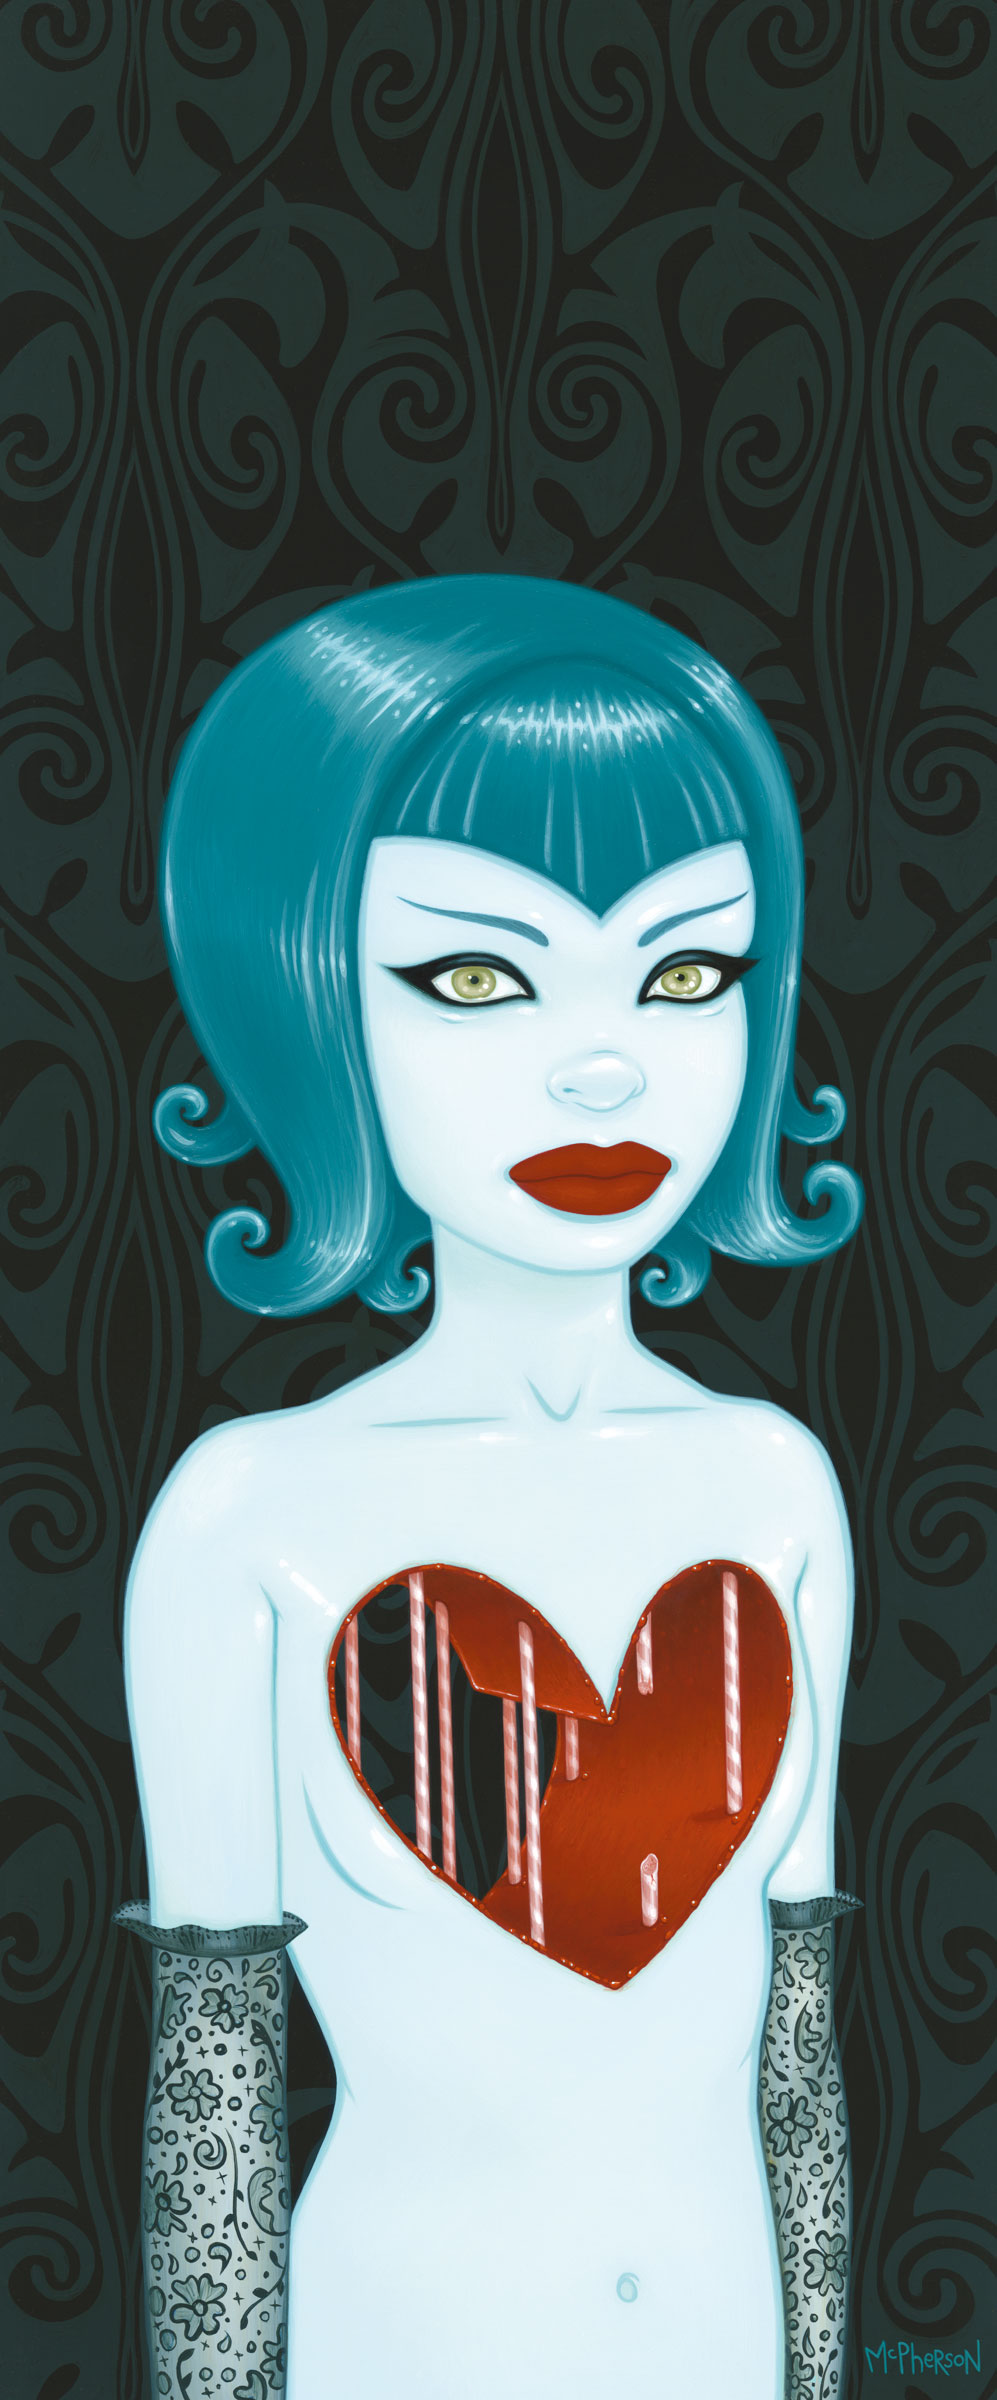 »Sometimes I Just Want a Hug« von Tara McPherson | 30,50 x 71,12cm | Acryl